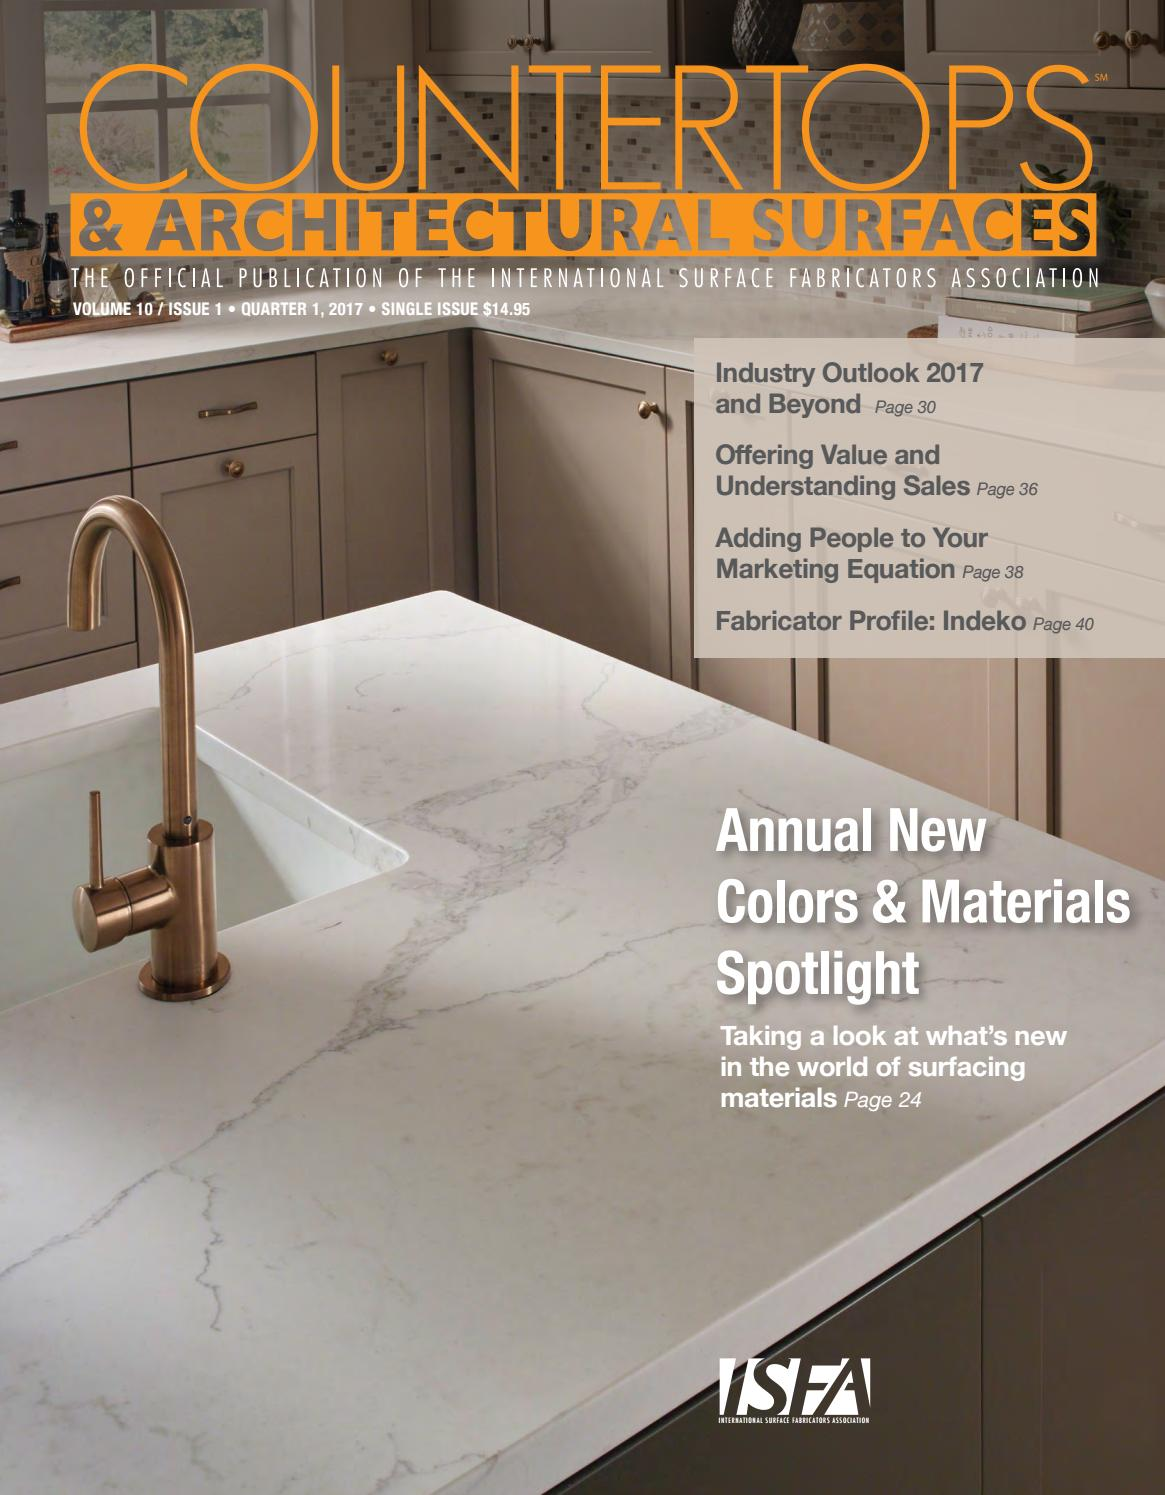 Isfa S Countertops Architectural Surfaces Vol 10 Issue 1 Q1 2017 L By Isfa Issuu